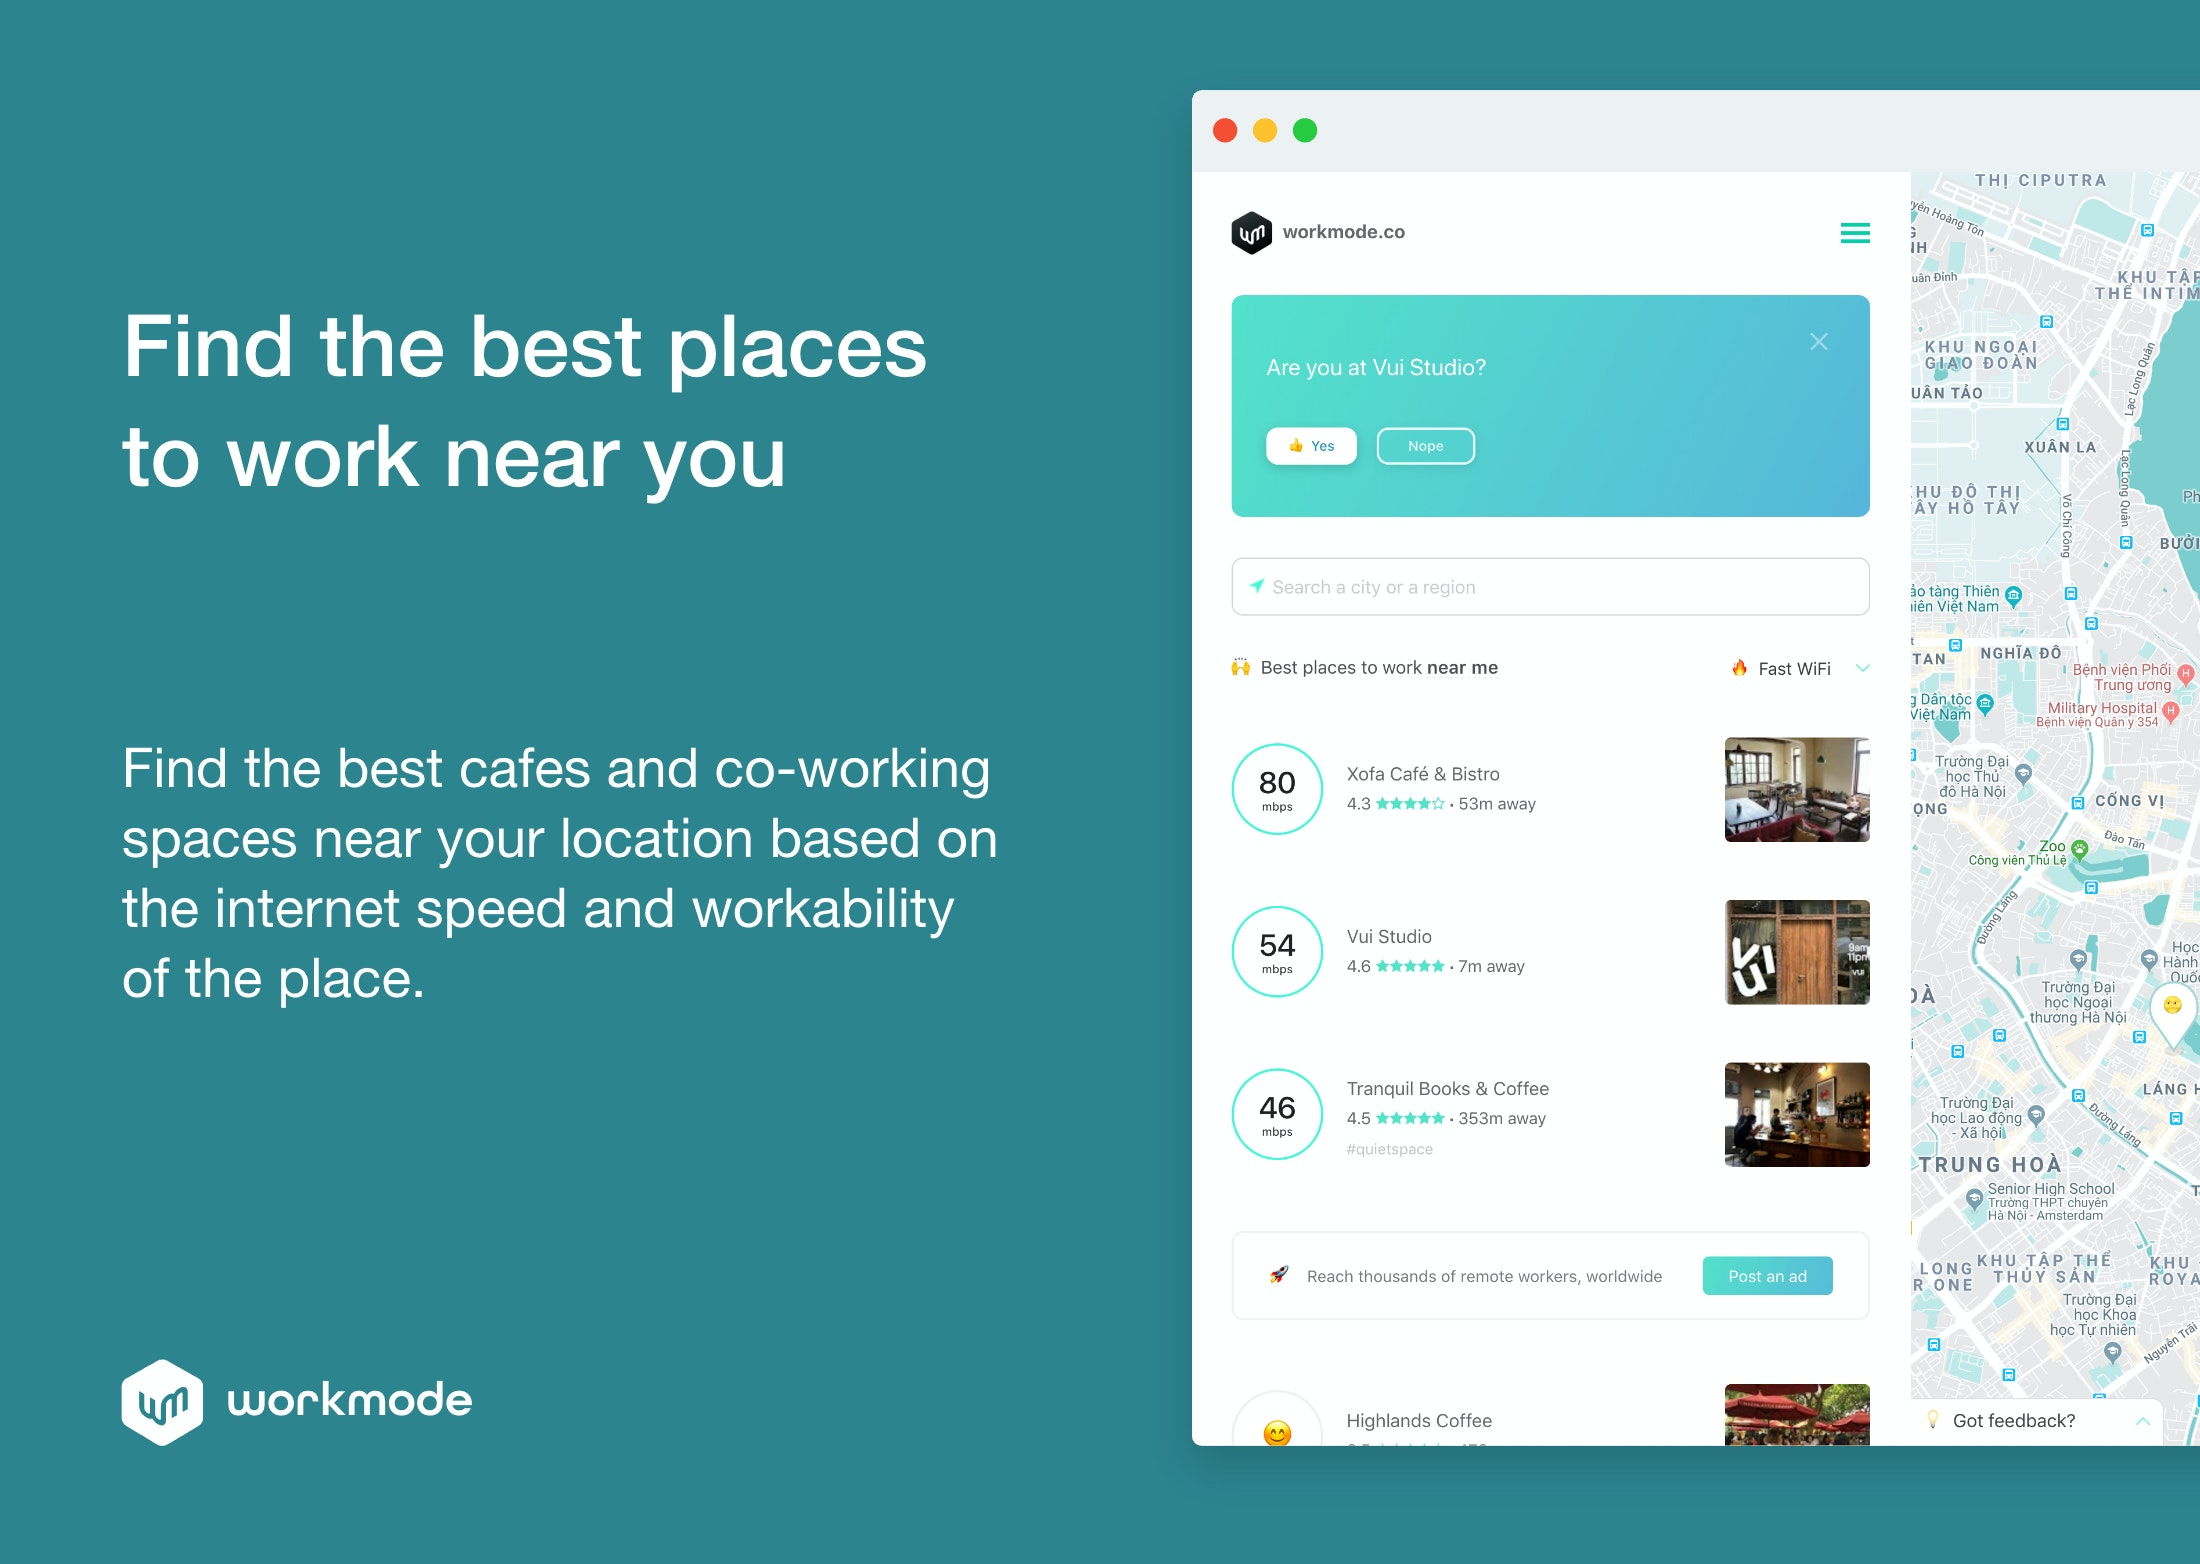 Workmode - Find the best places to work from near you